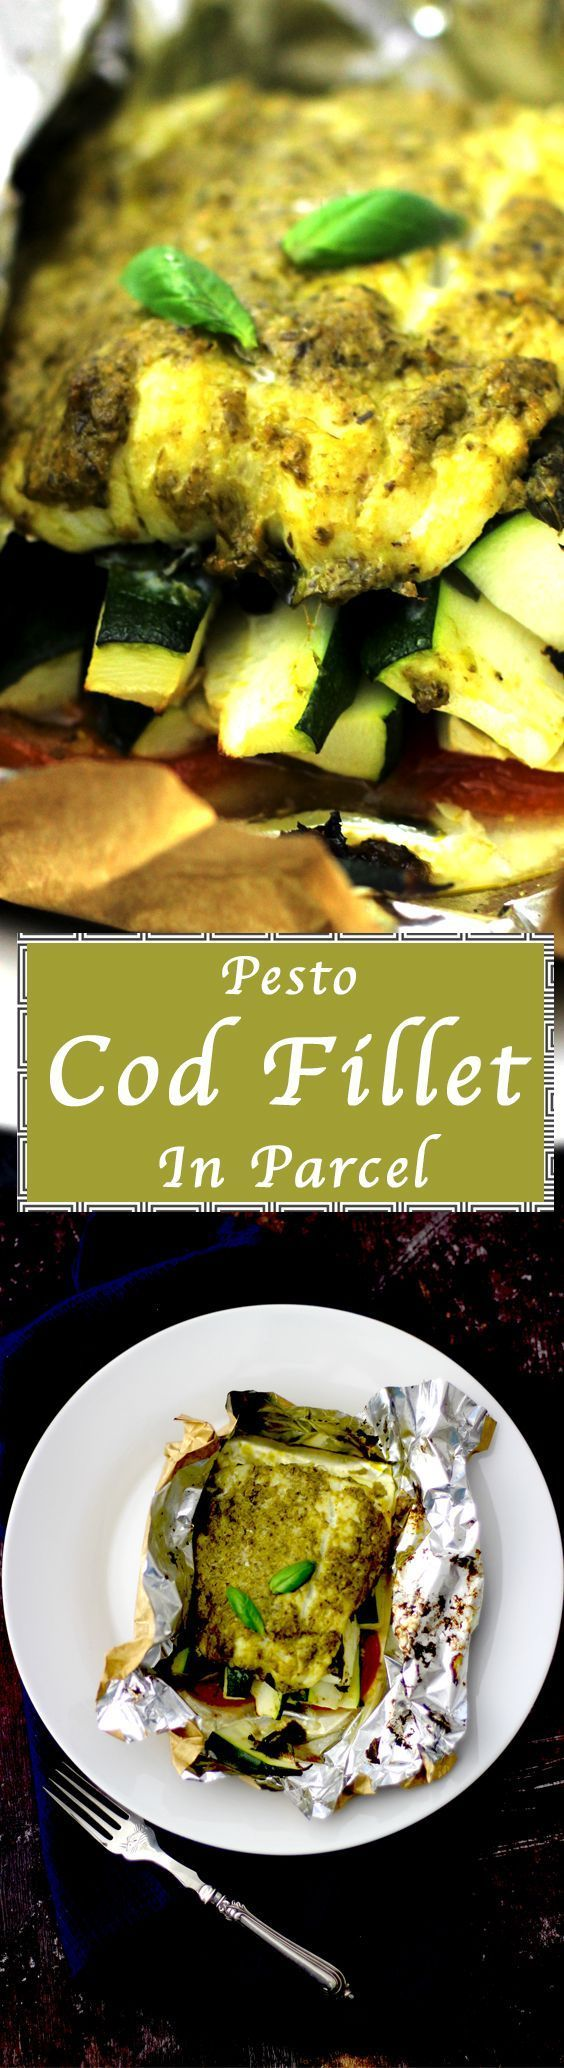 Basil Pesto Cod Fillet in Parcel - under 200 calories meal in less than 30 minutes. Weekday meal plan. Courgette, Tomatoes, Garlic and pepper. Parcel made with parchment paper and in the oven for 20 minutes. Easy Seafood recipe for healthy diet.